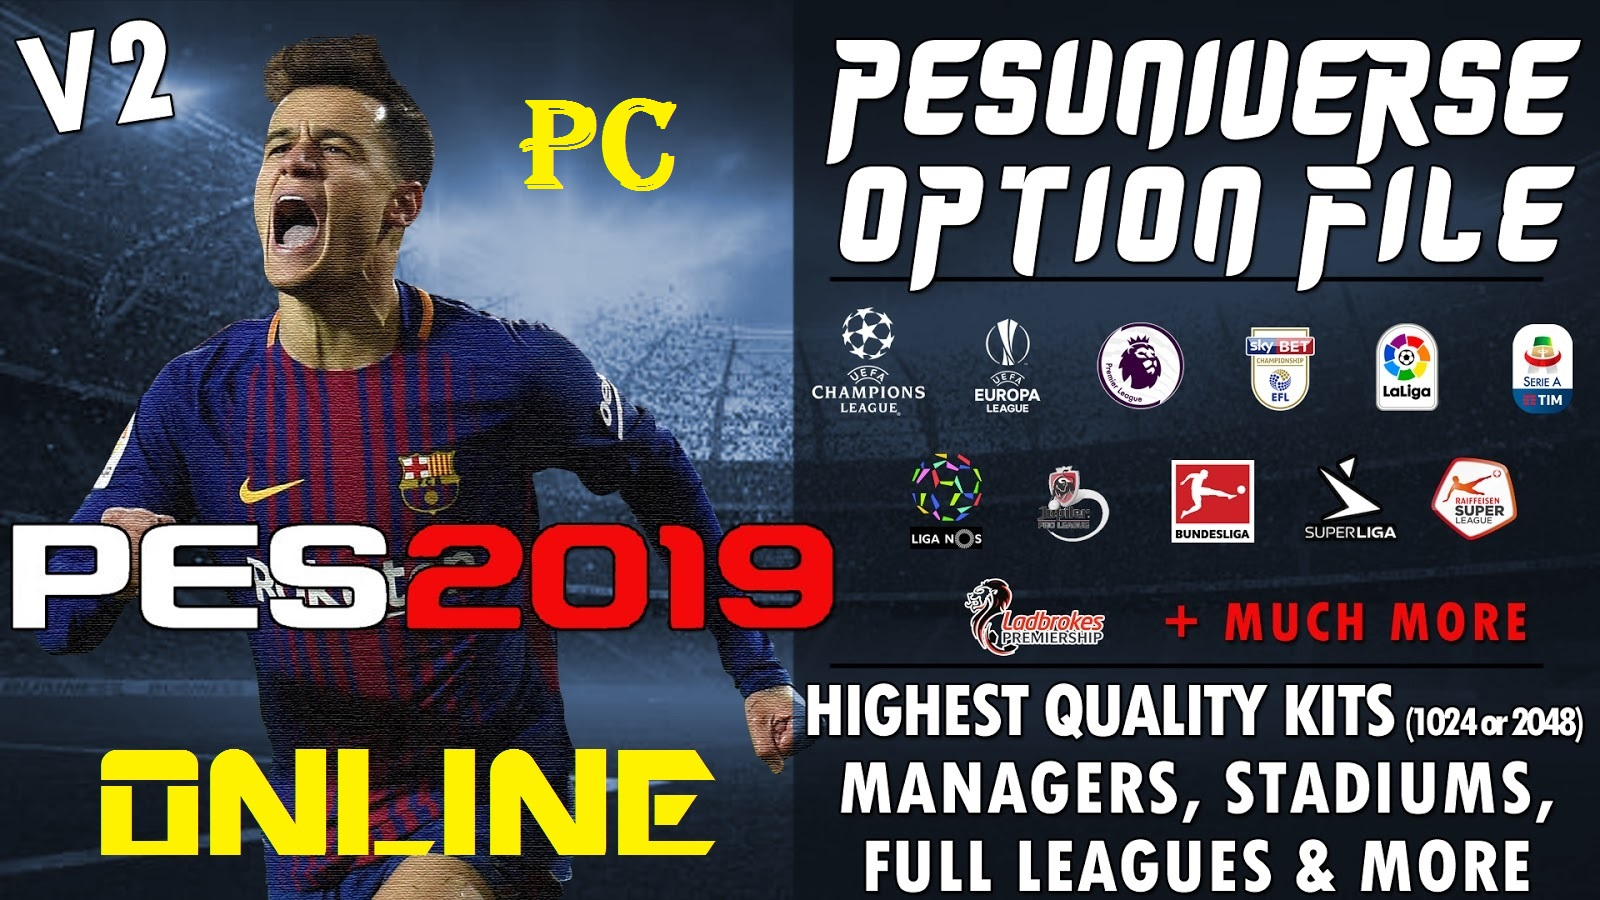 PesUniverse | V2 | Option File | PES2019 | PC | PS4 [26 09 2018